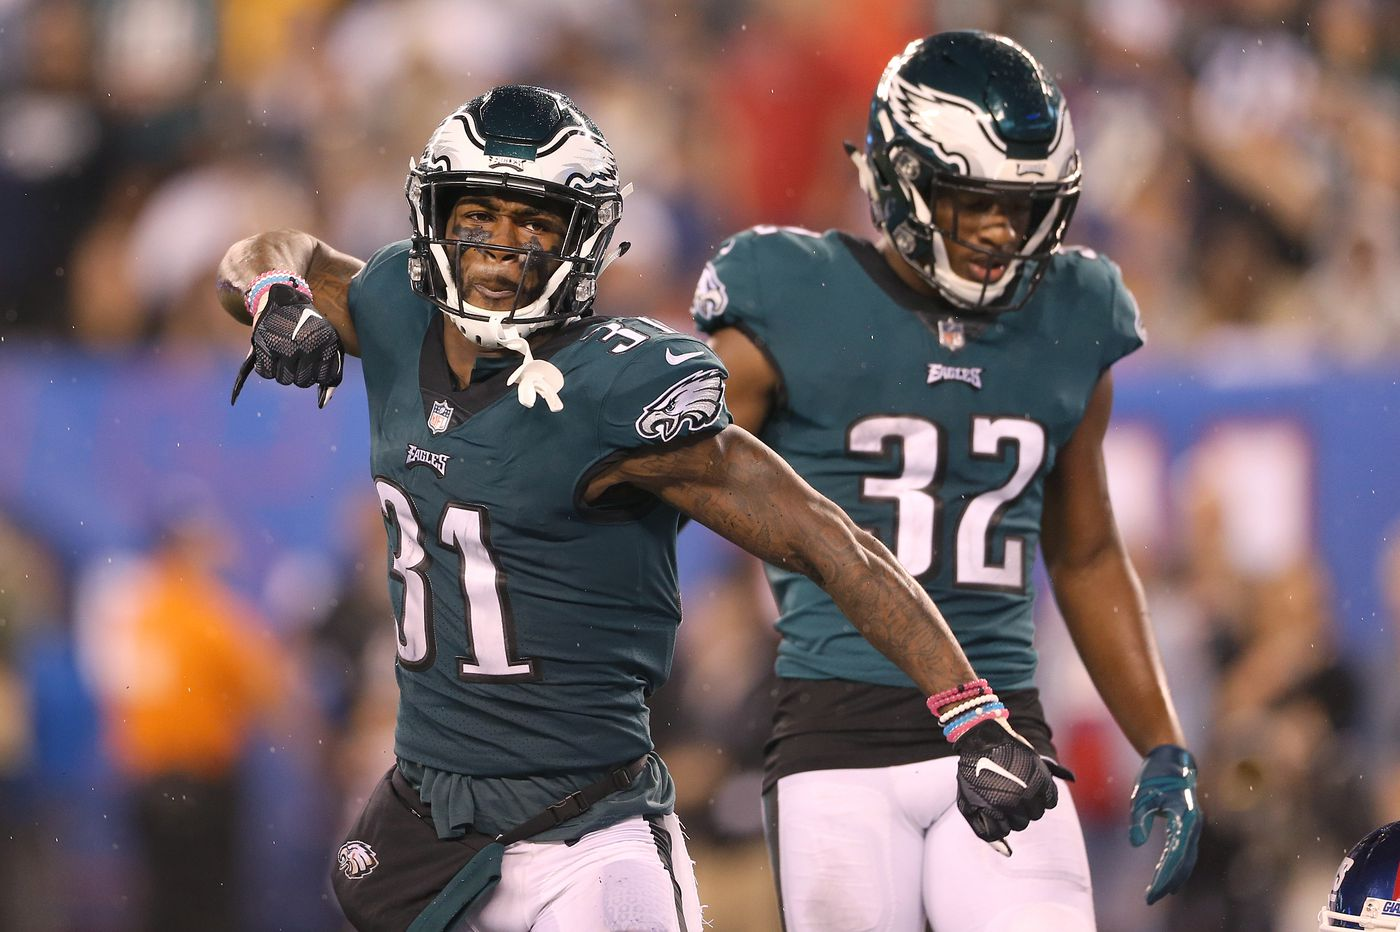 Sleep well, Eagles fans. This is still the only good team in the NFC East | David Murphy